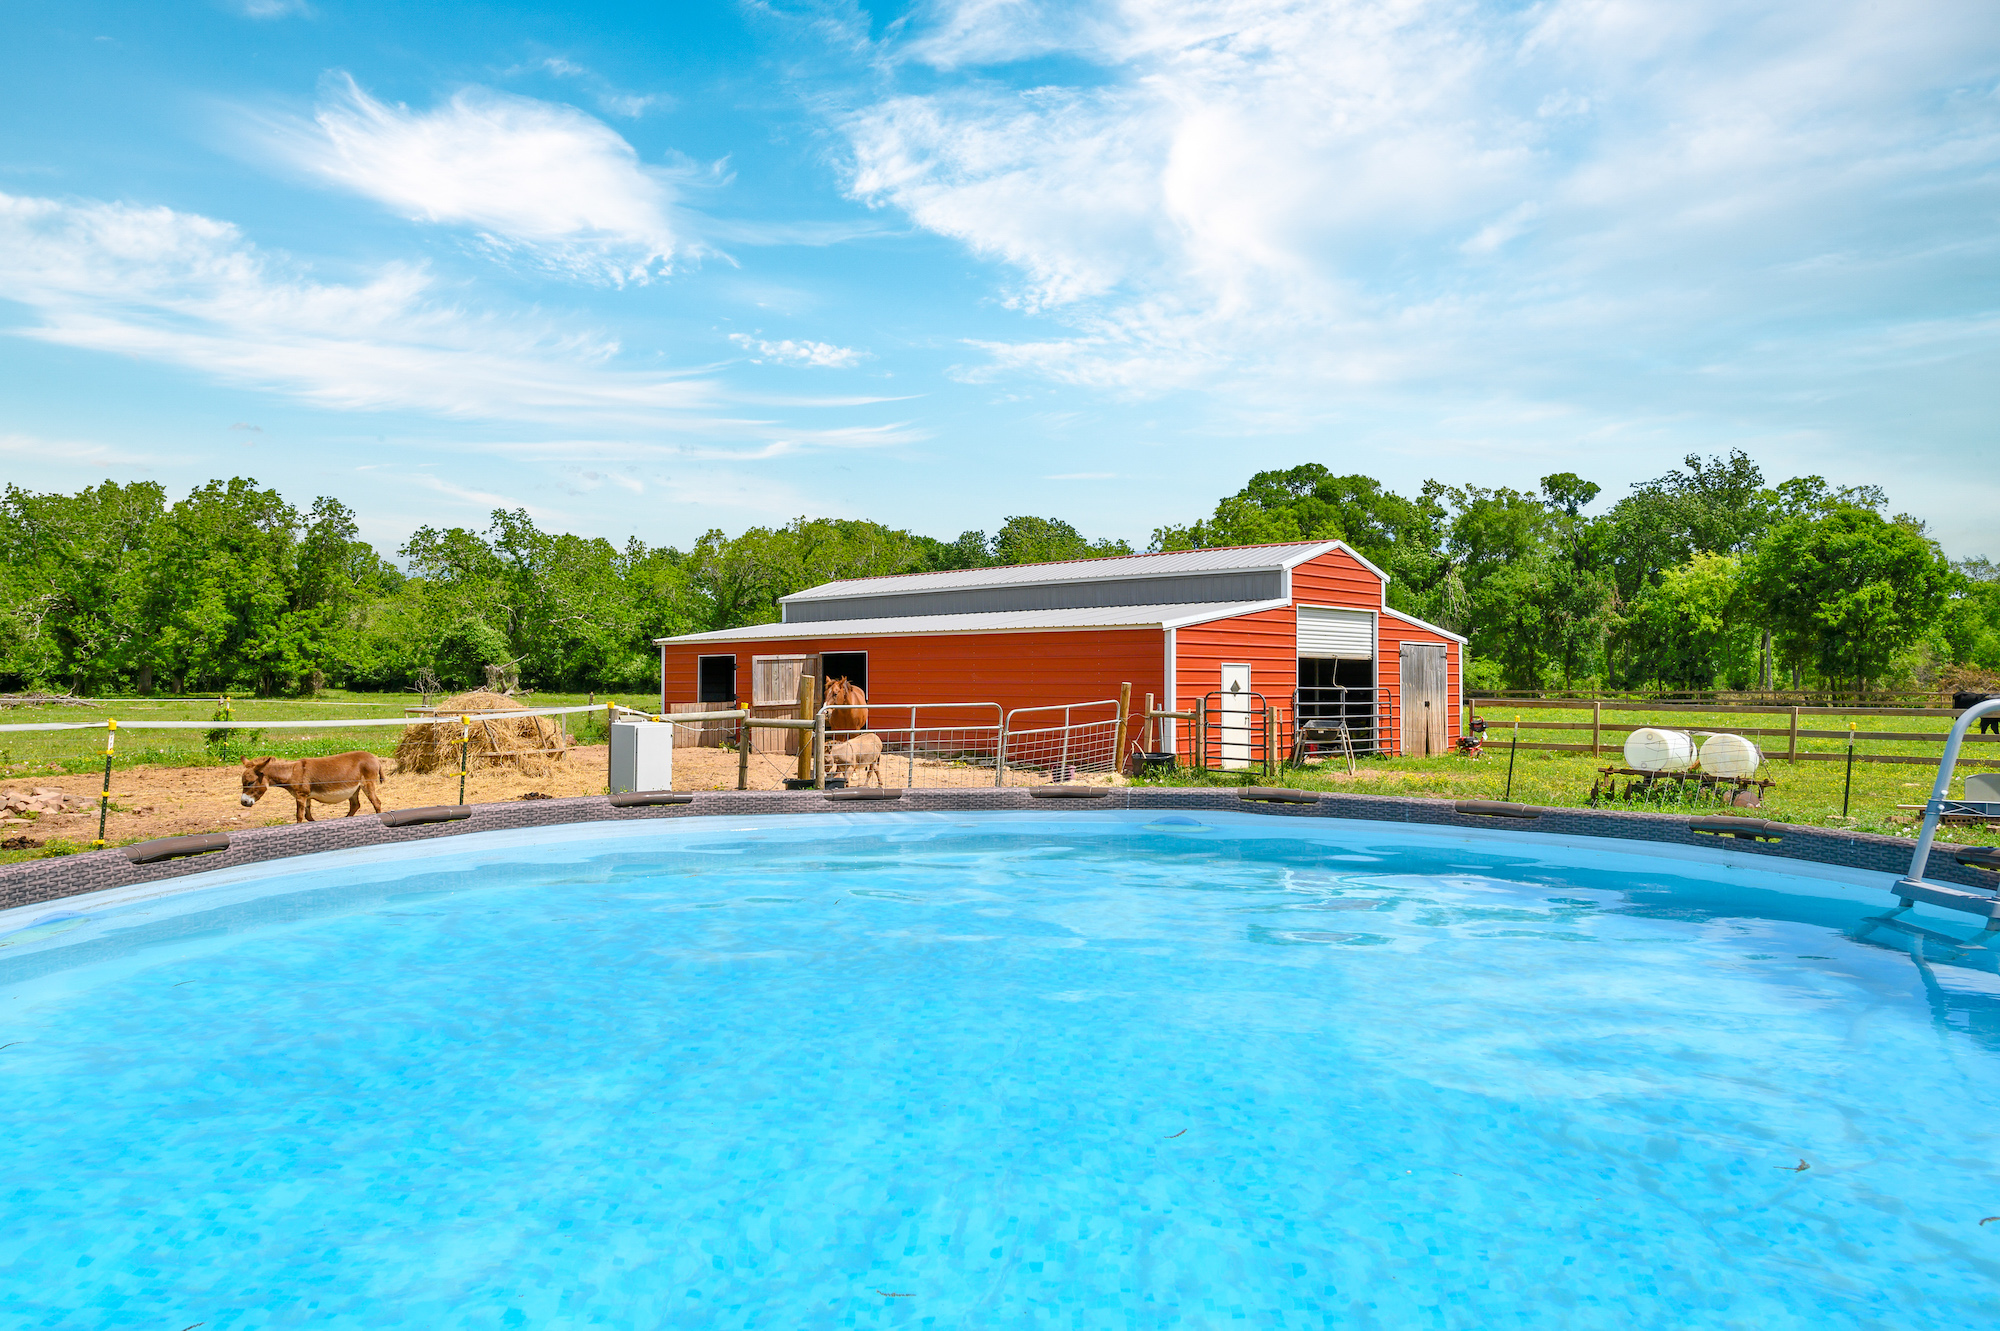 Custom Country Home with Acreage in Sealy - Image 44 of 46